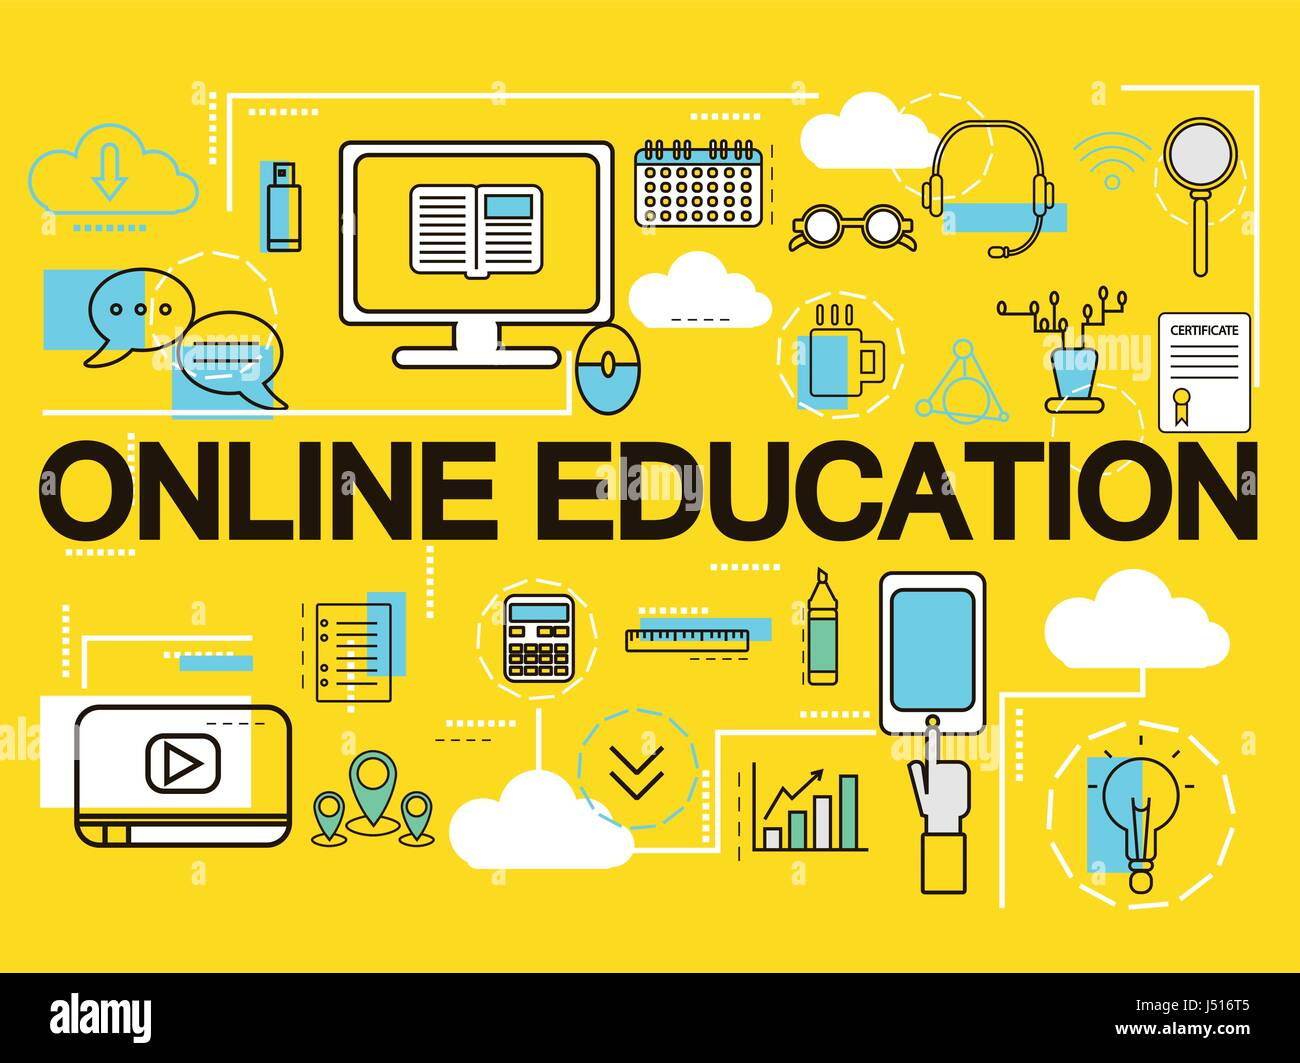 Online Education Banner Concept E Learning Thin Line Icons Vector Stock Vector Image Art Alamy